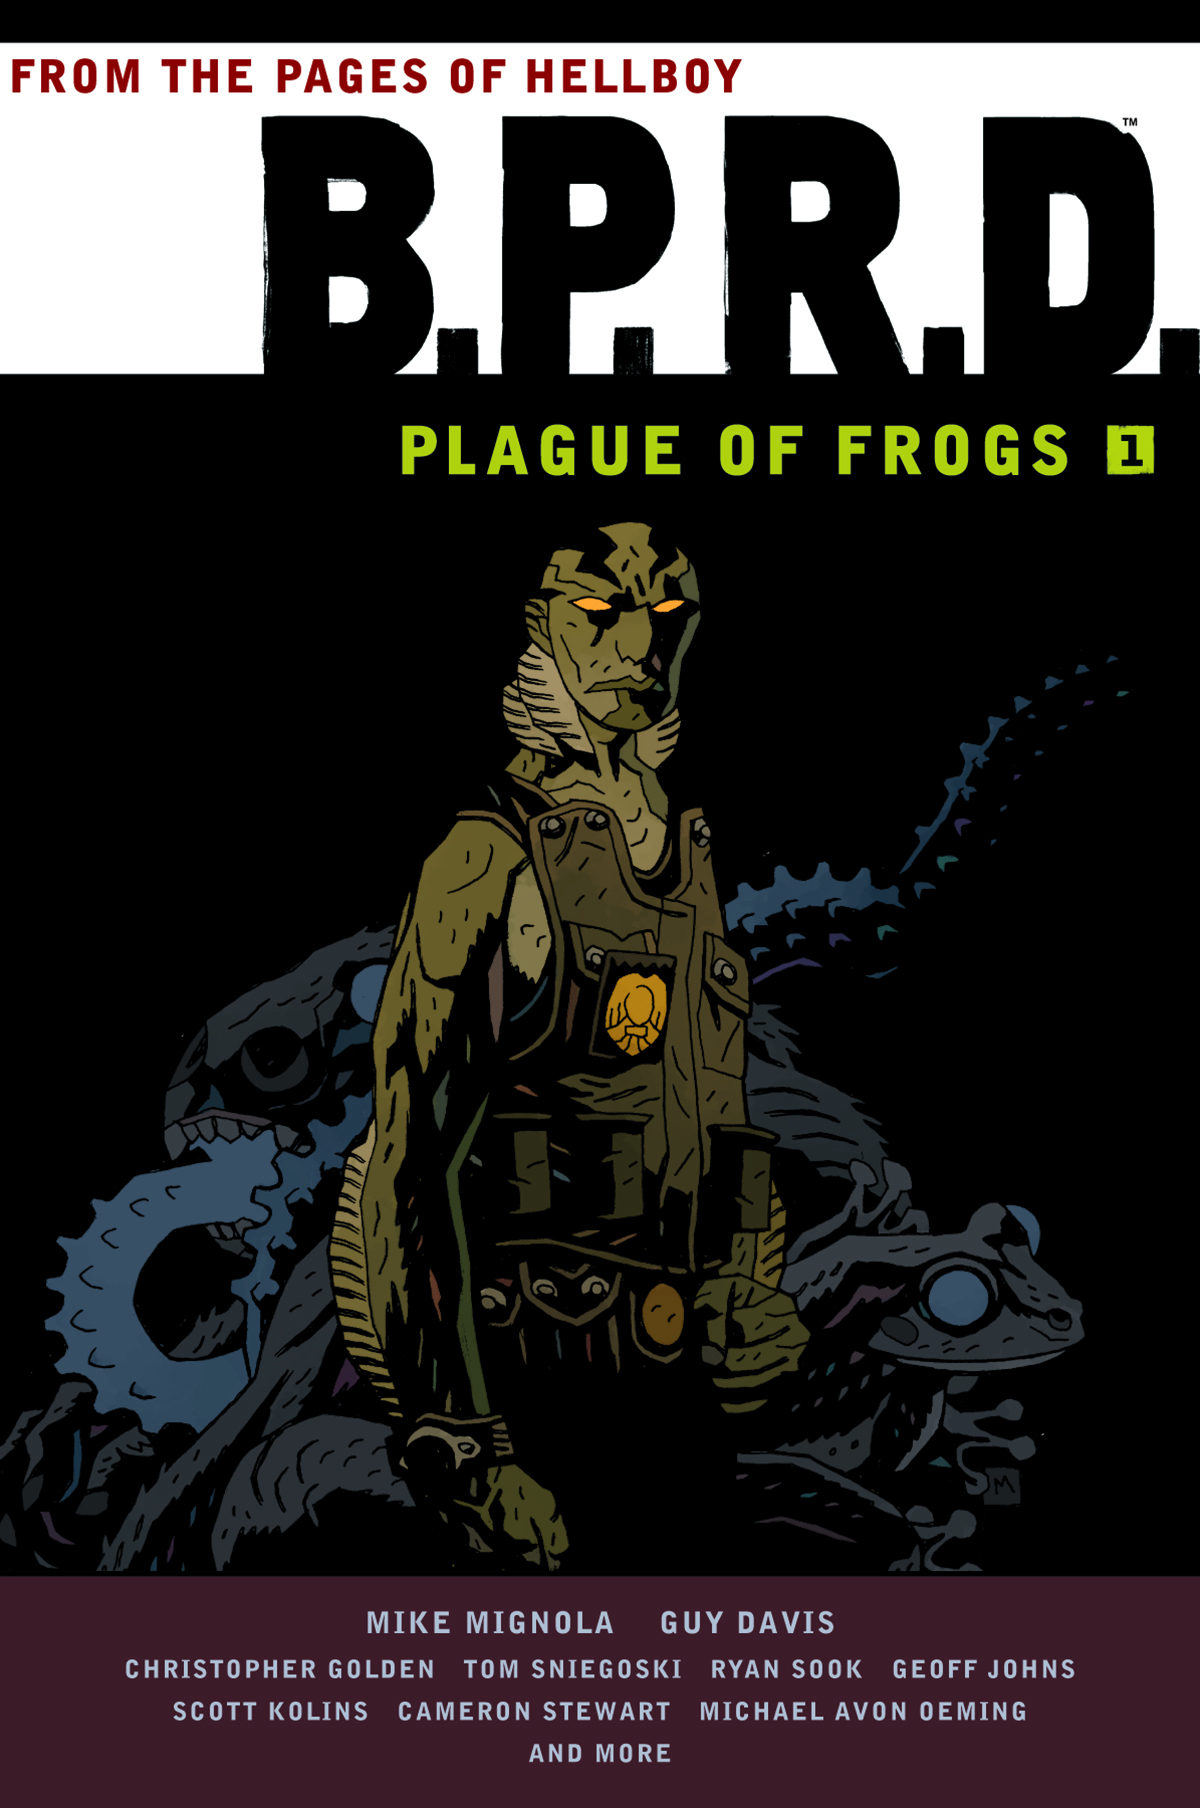 BPRD PLAGUE OF FROGS TP VOL 01 (JUN140016)